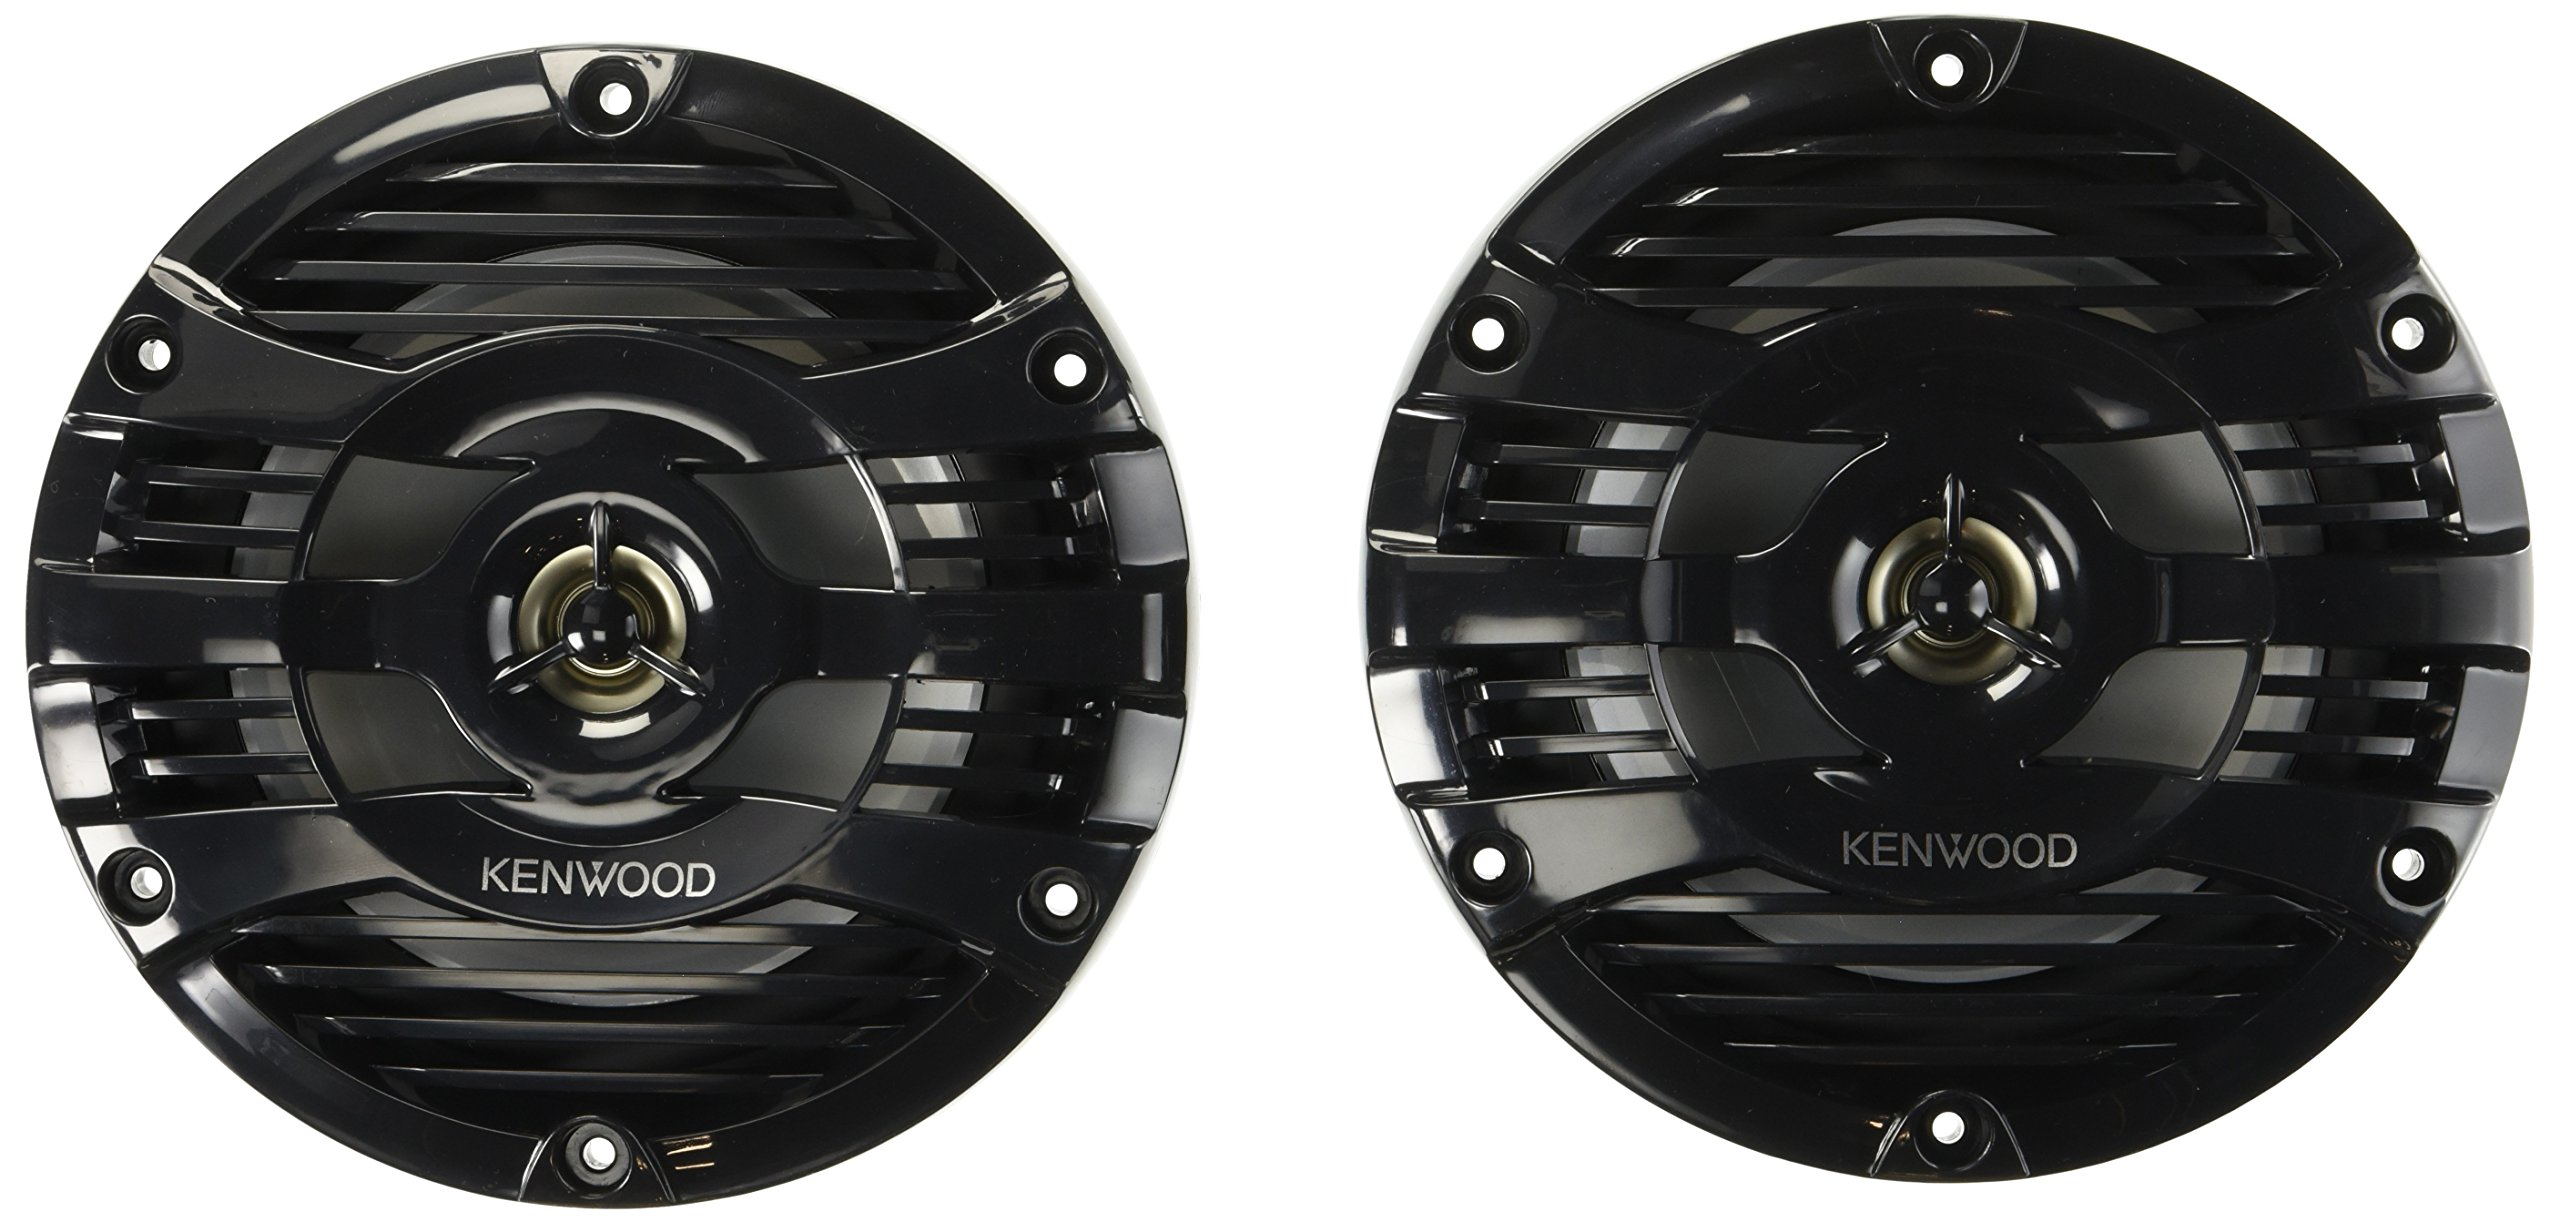 Kenwood 6.5'' Black Marine 2 Way Speakers 150 Watts